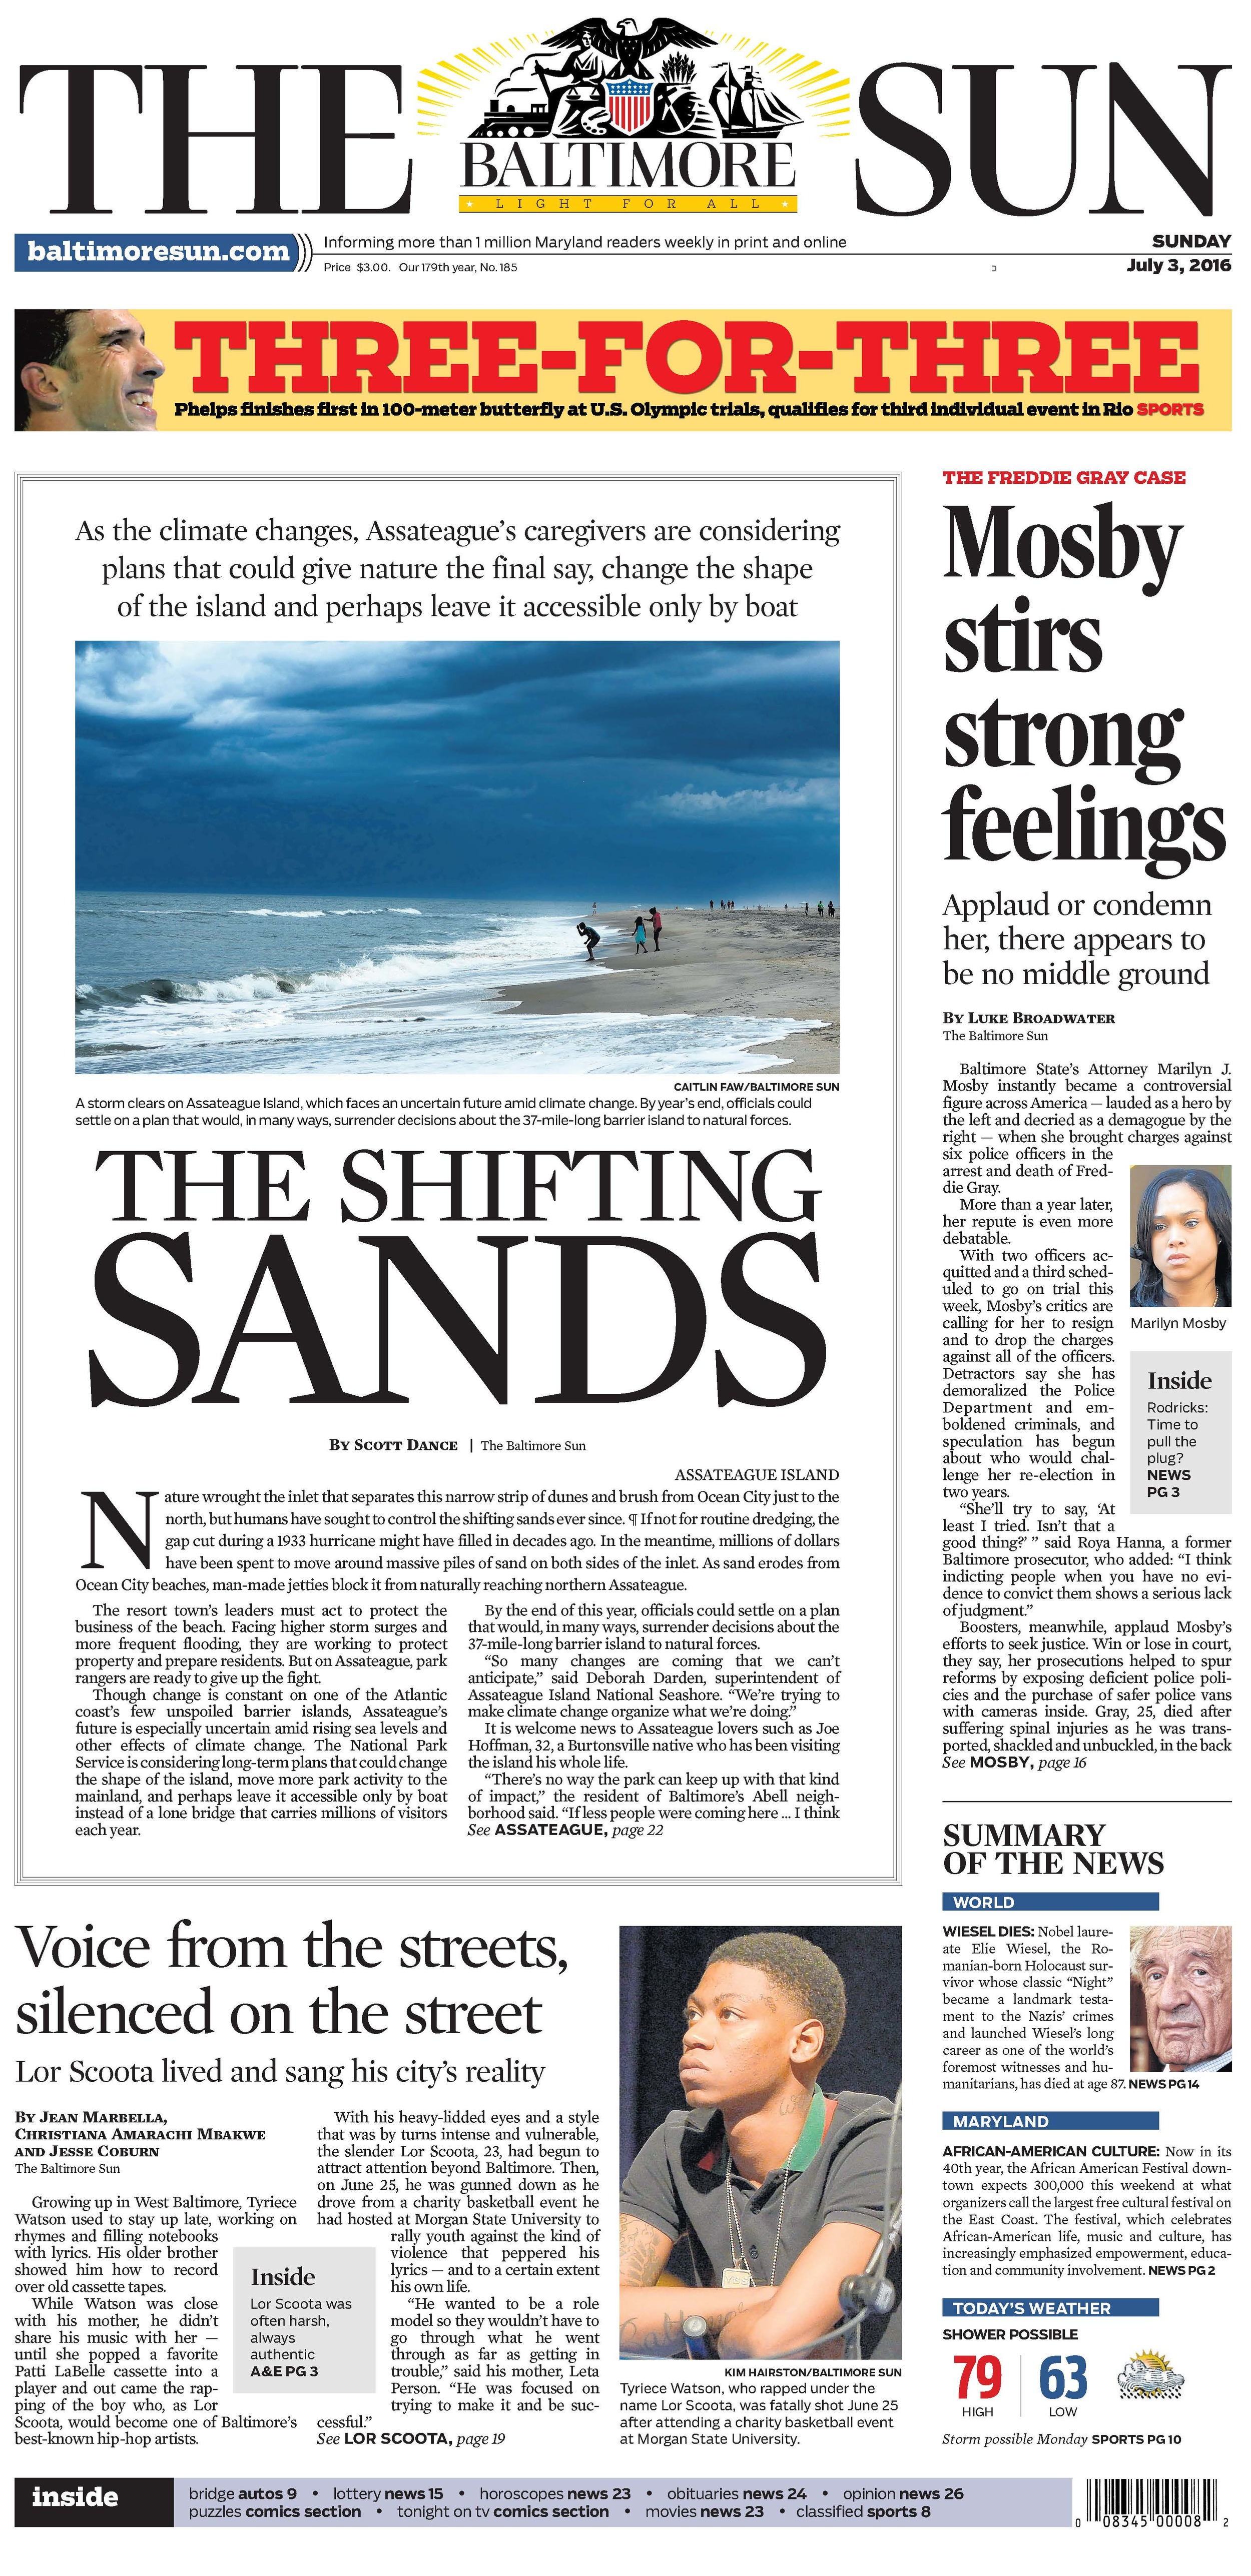 The Baltimore Sun   Sunday, July 3, 2016